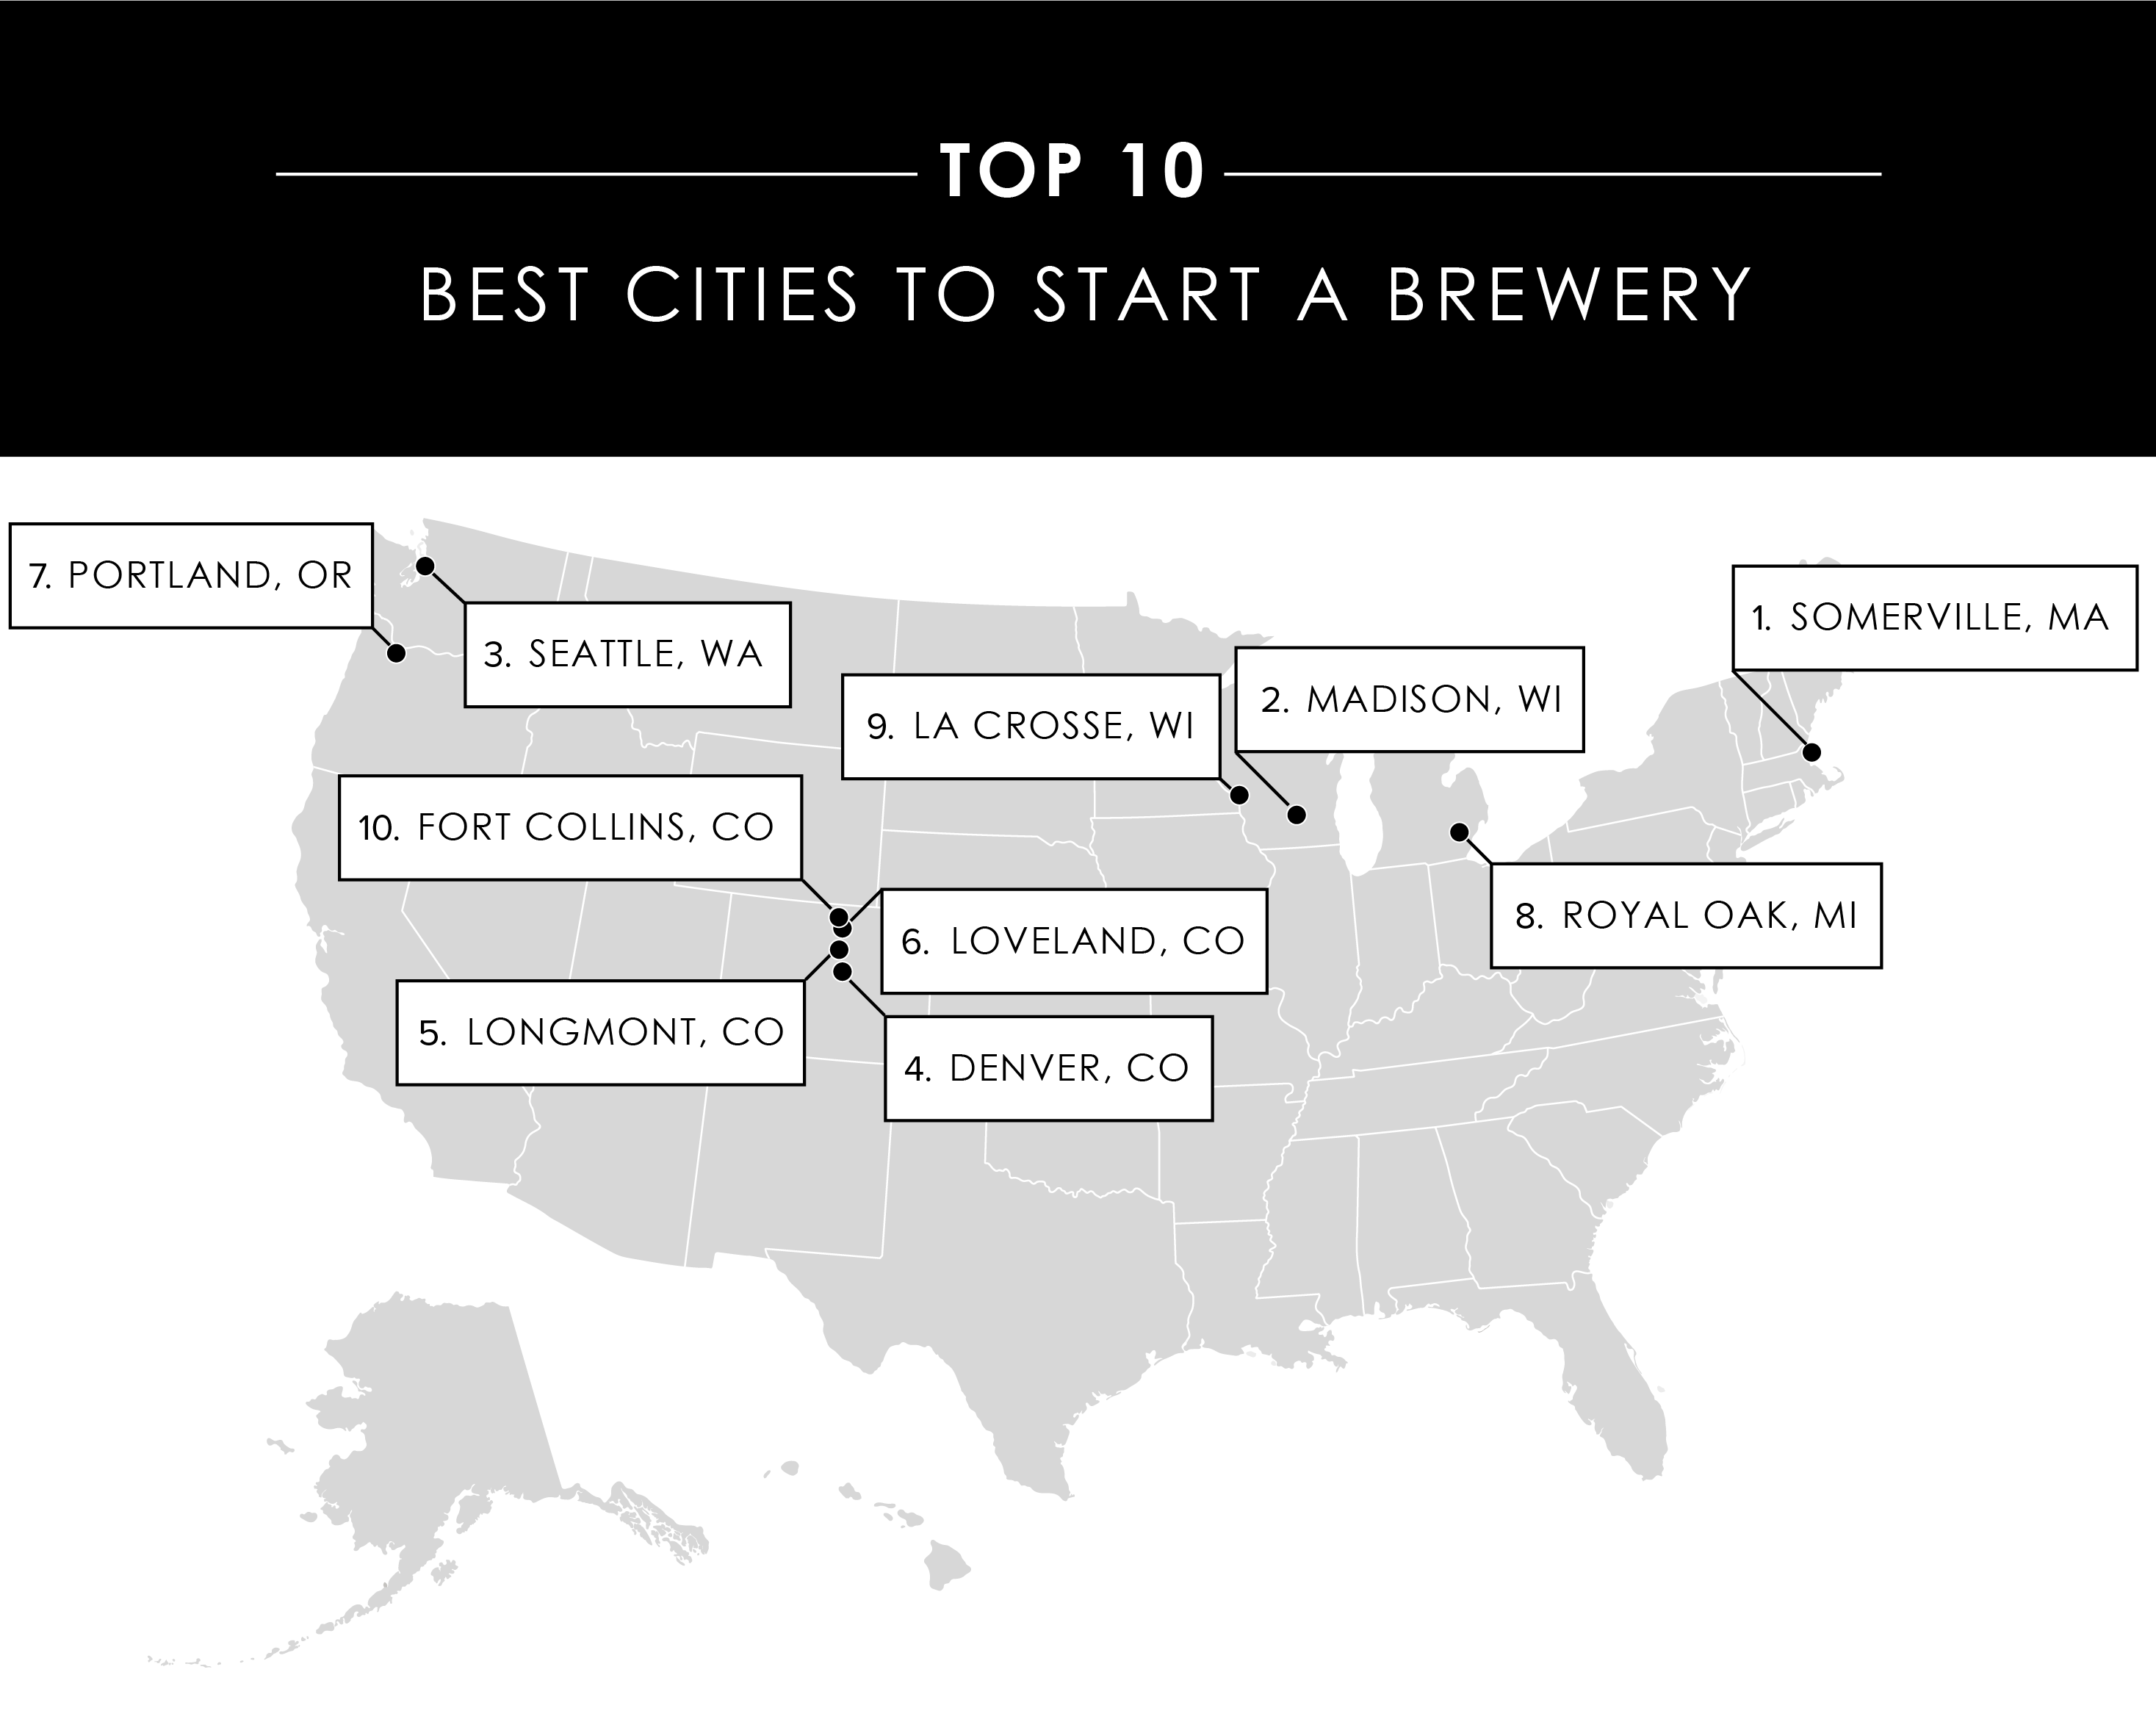 Best Cities to Open a Brewery